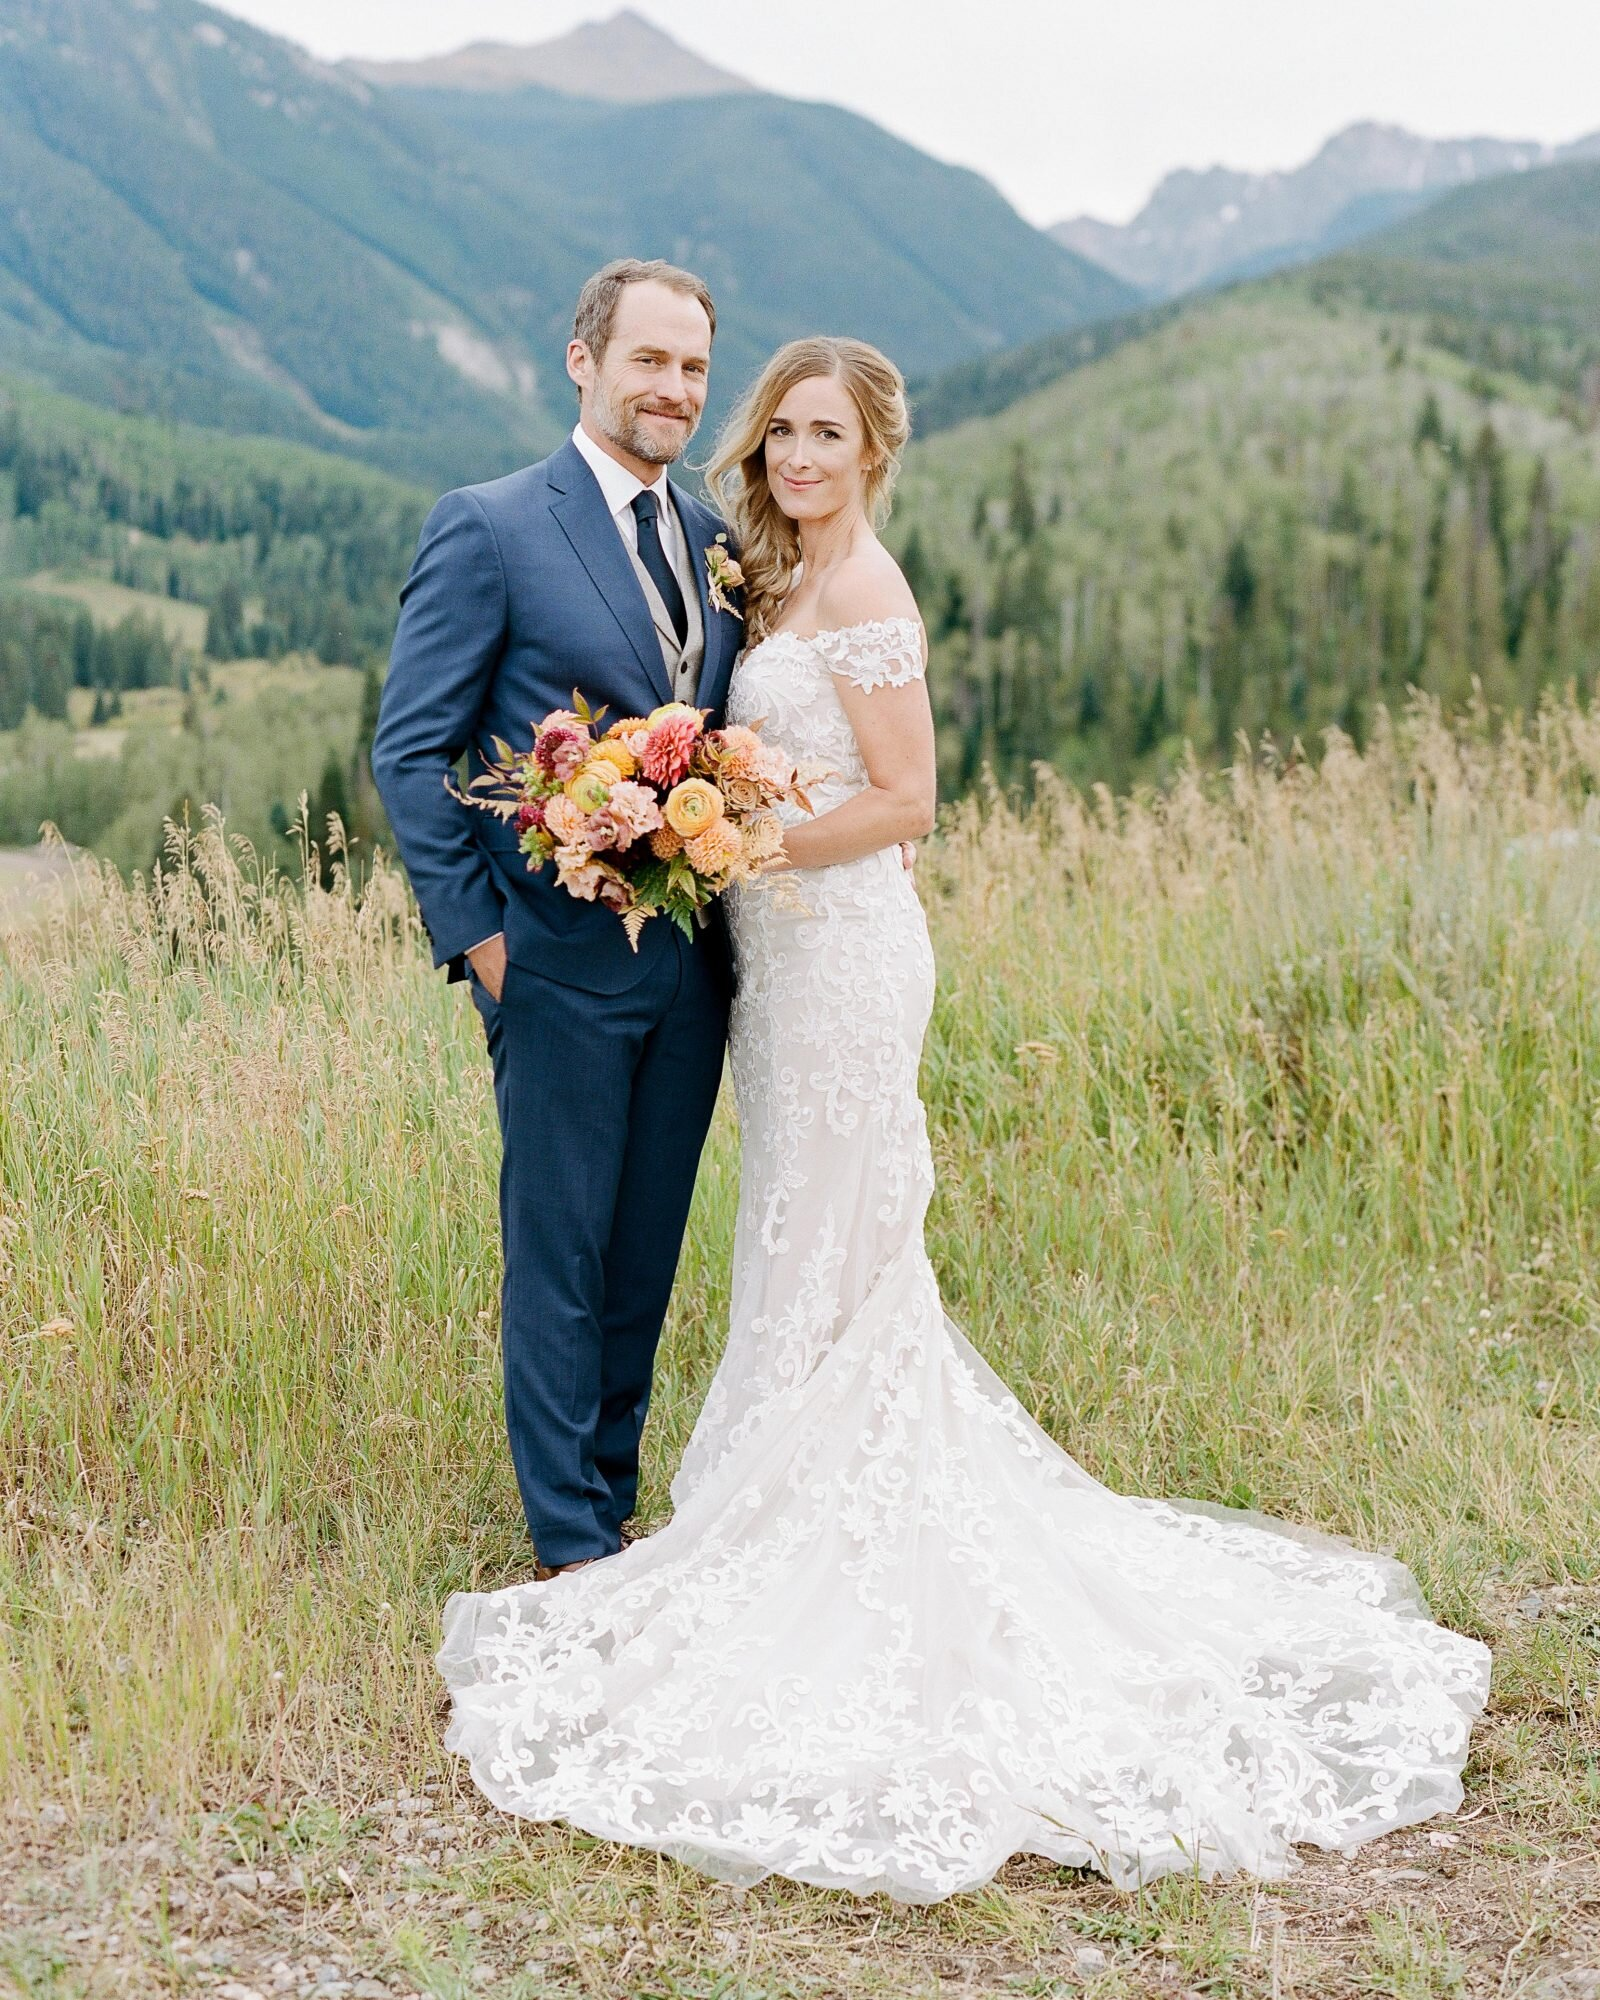 This Sustainable Outdoor Wedding In The Colorado Mountains Was